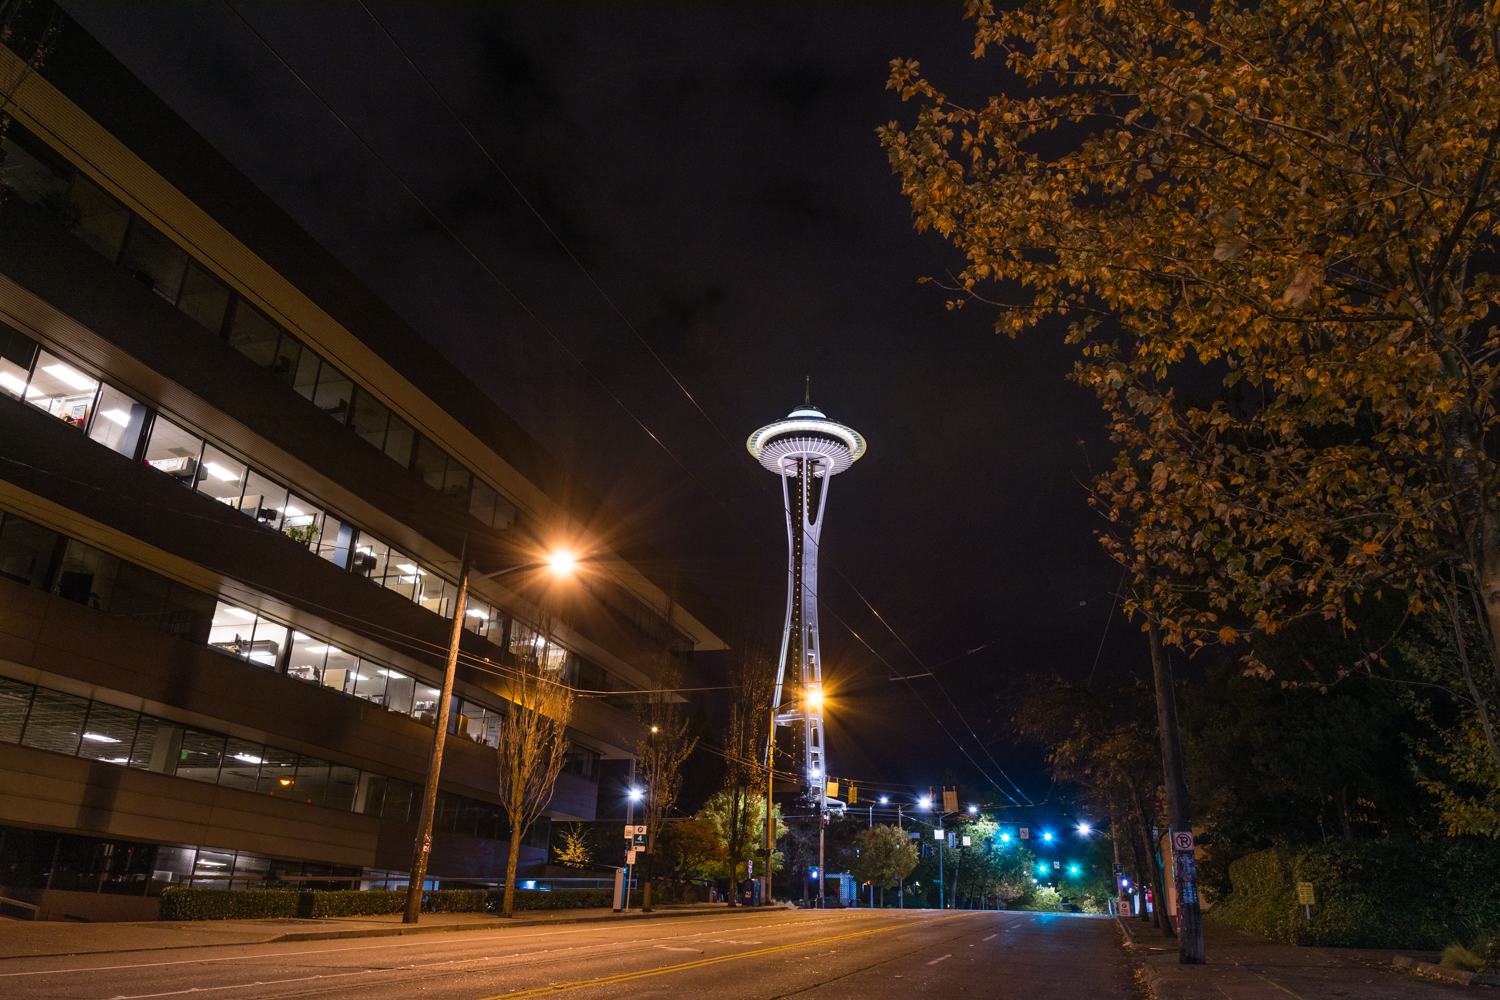 The famous Space Needle